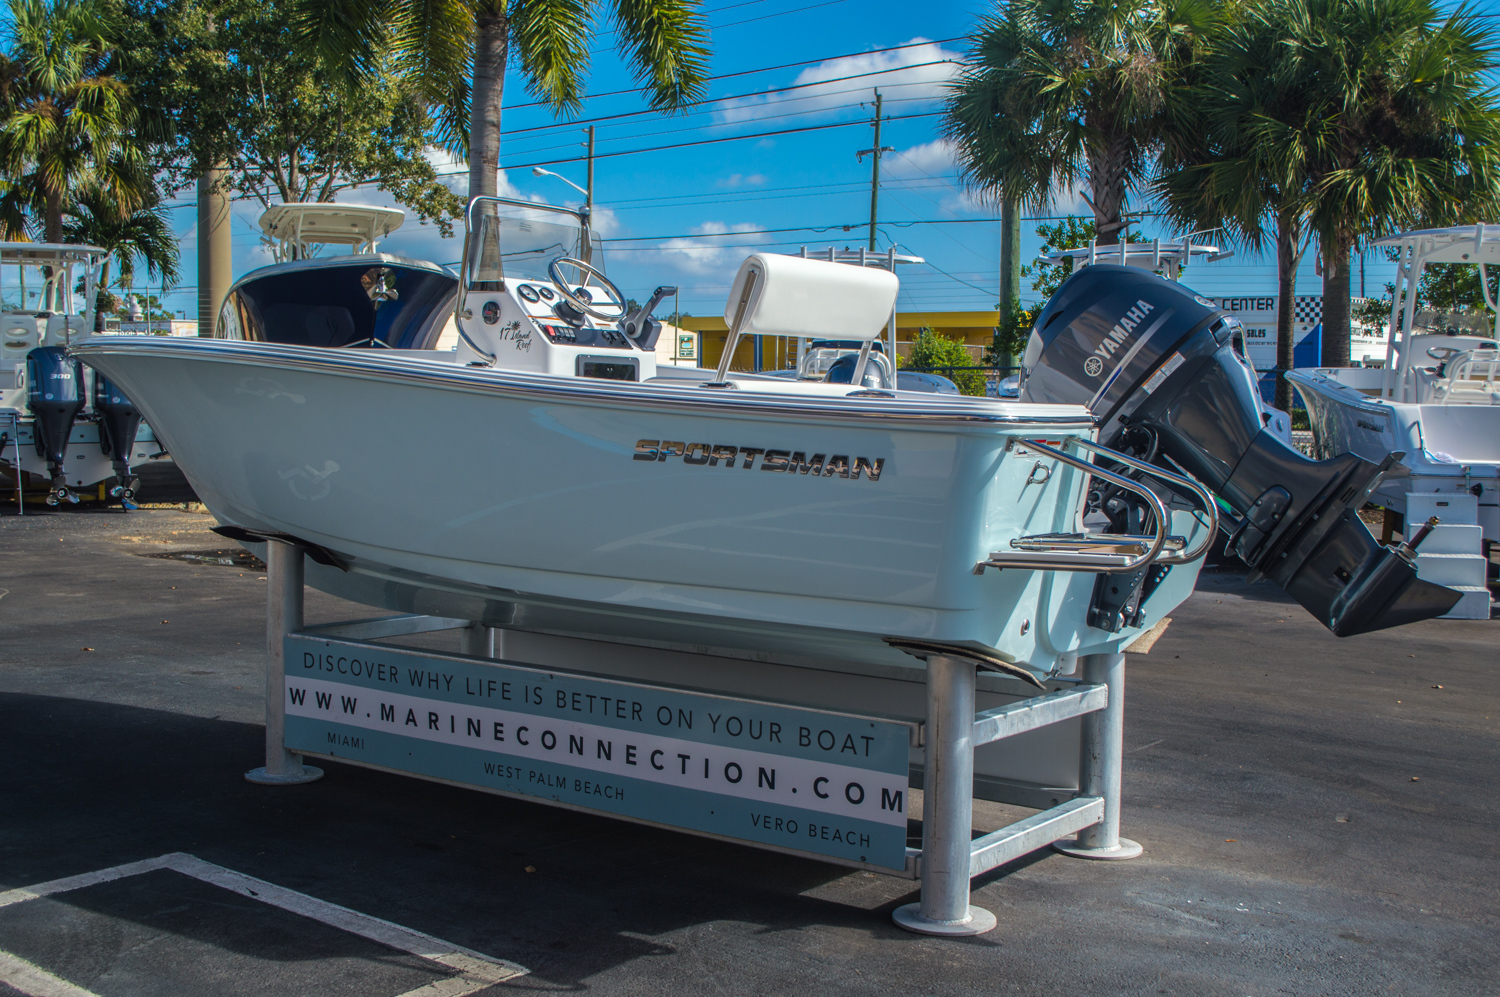 Thumbnail 6 for New 2016 Sportsman 17 Island Reef boat for sale in Vero Beach, FL